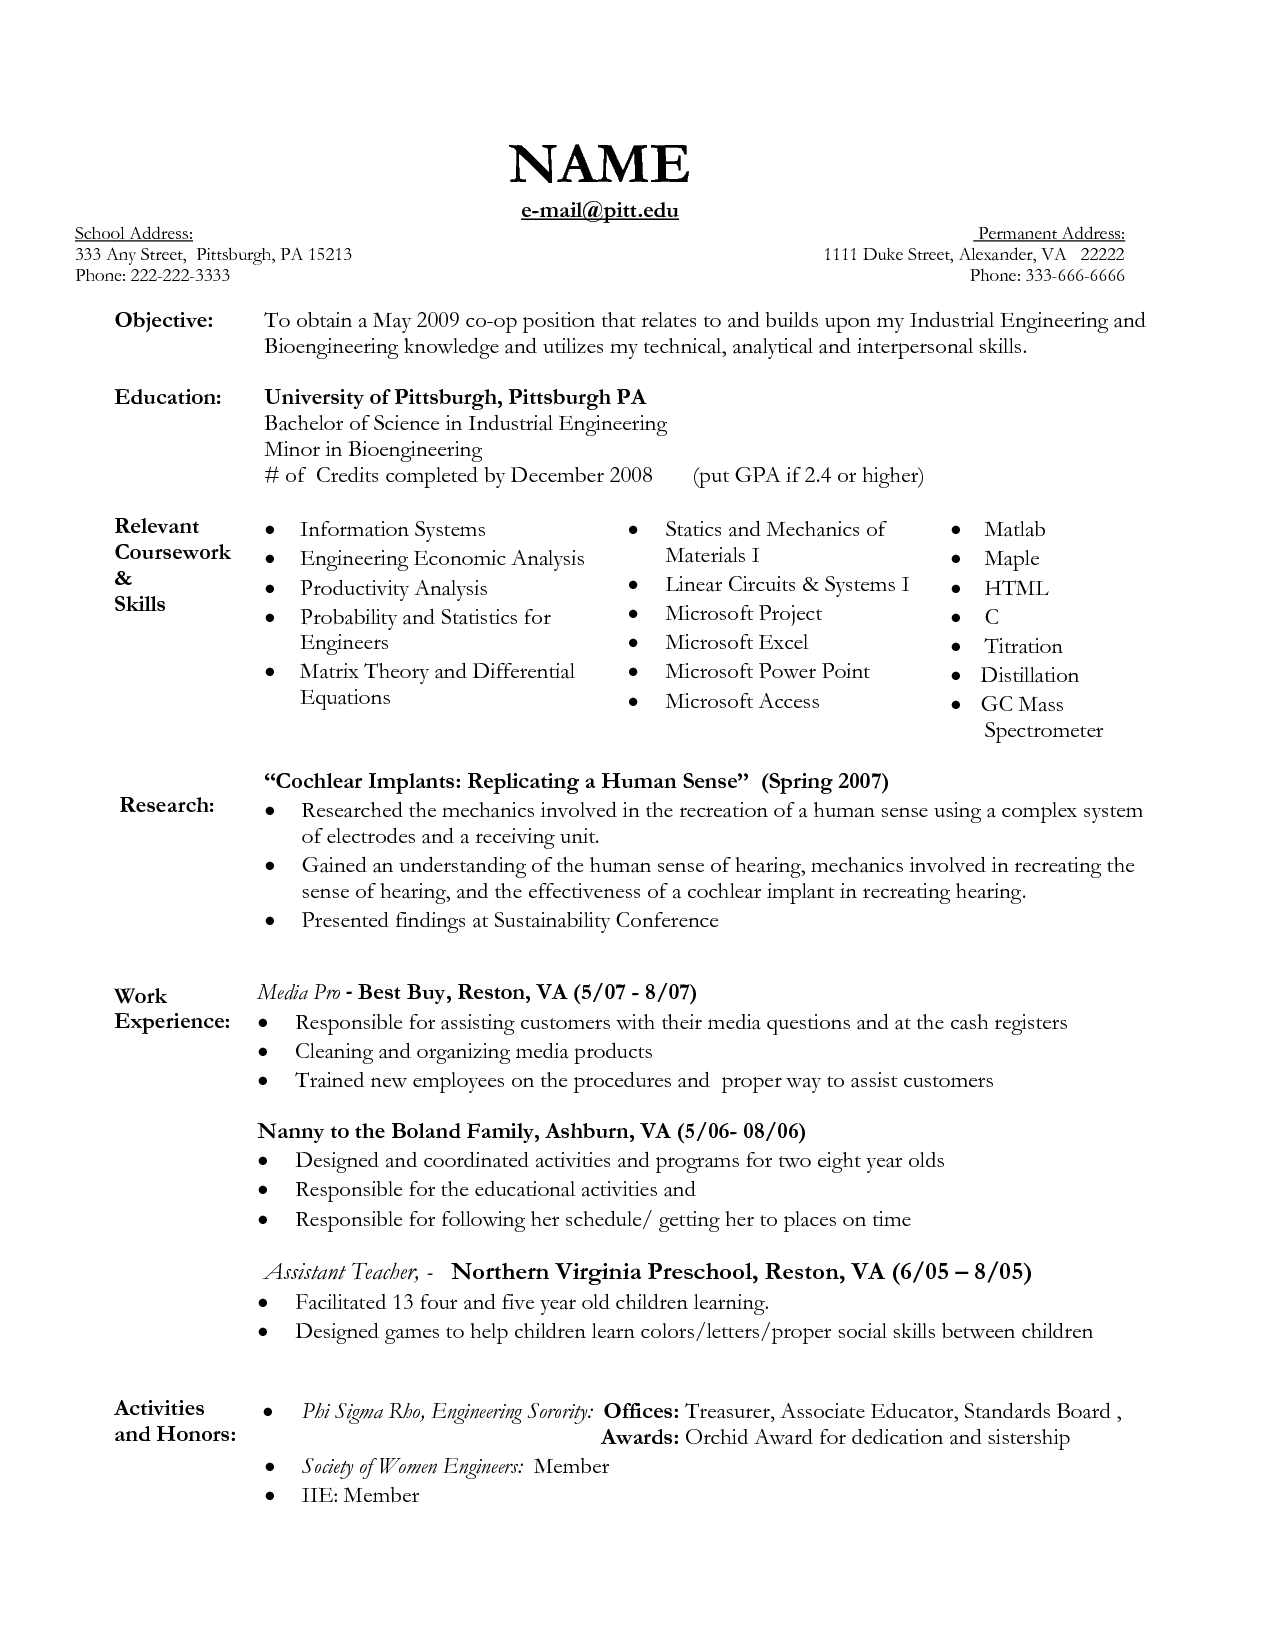 Resume Nanny Resume Objective perfect tips write nanny resume sample samplebusinessresume com objective for and care description sample